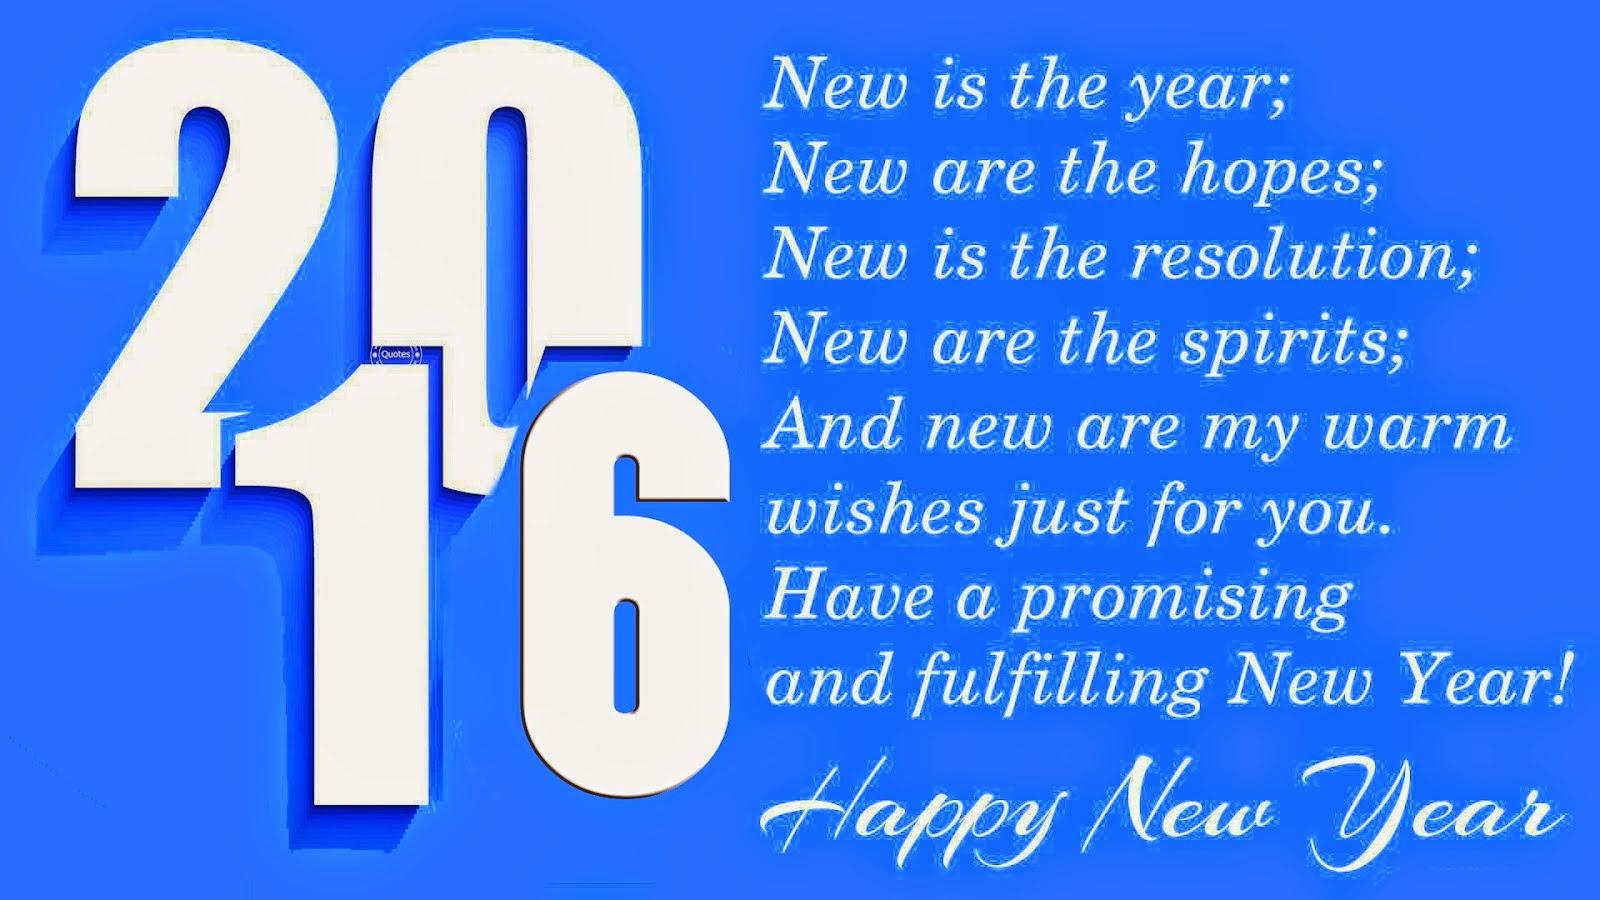 Download-Free-Happy-New-Year-Images-http-www-welcomehappynewyear-com-download-free-happ-wallpaper-wp5205959